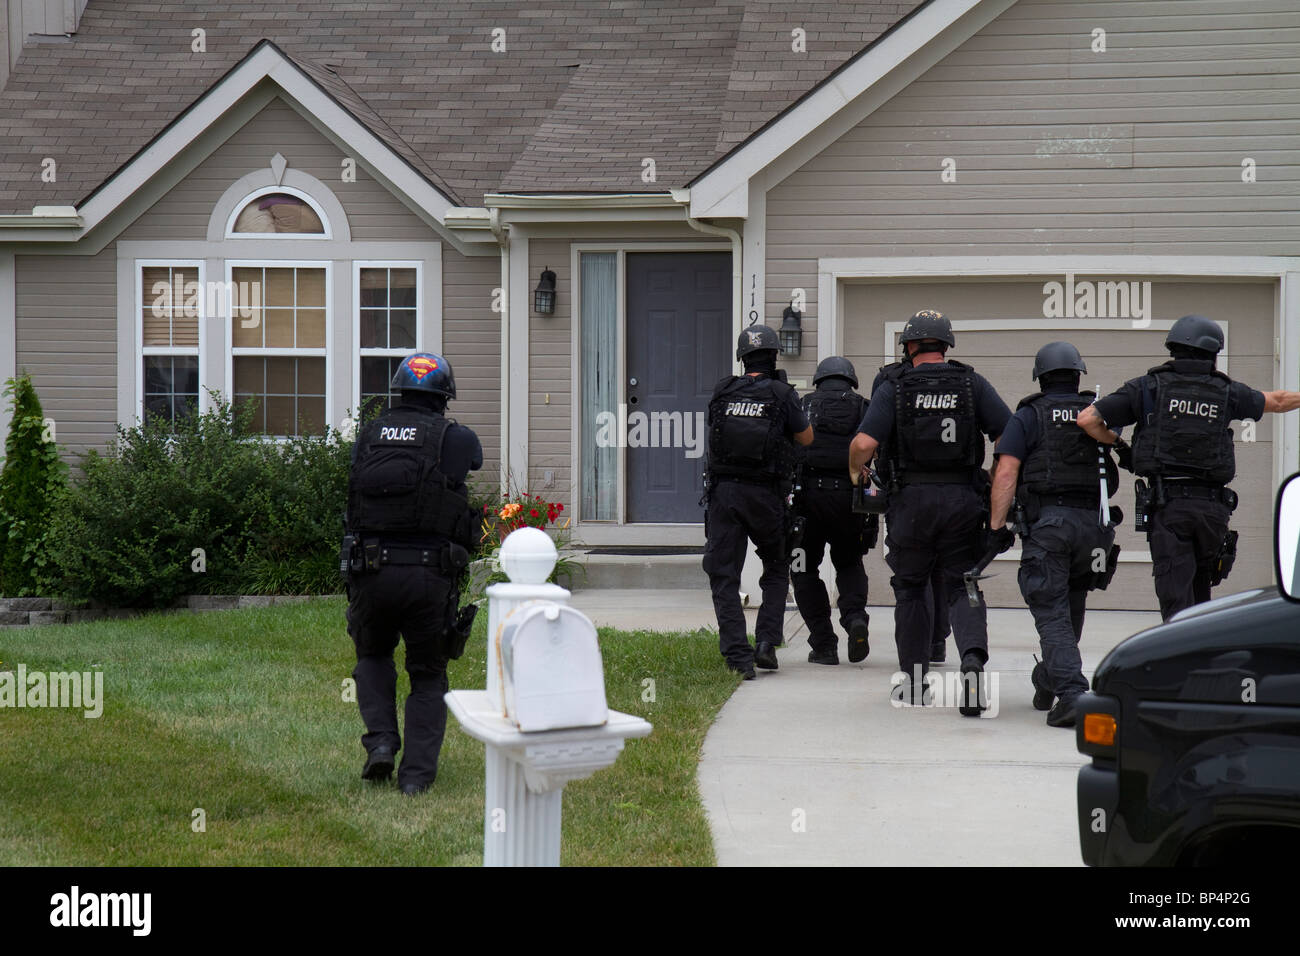 Police Tactical team from Street Narcotics Unit approach residence to serve a drug related high risk search warrant. - Stock Image